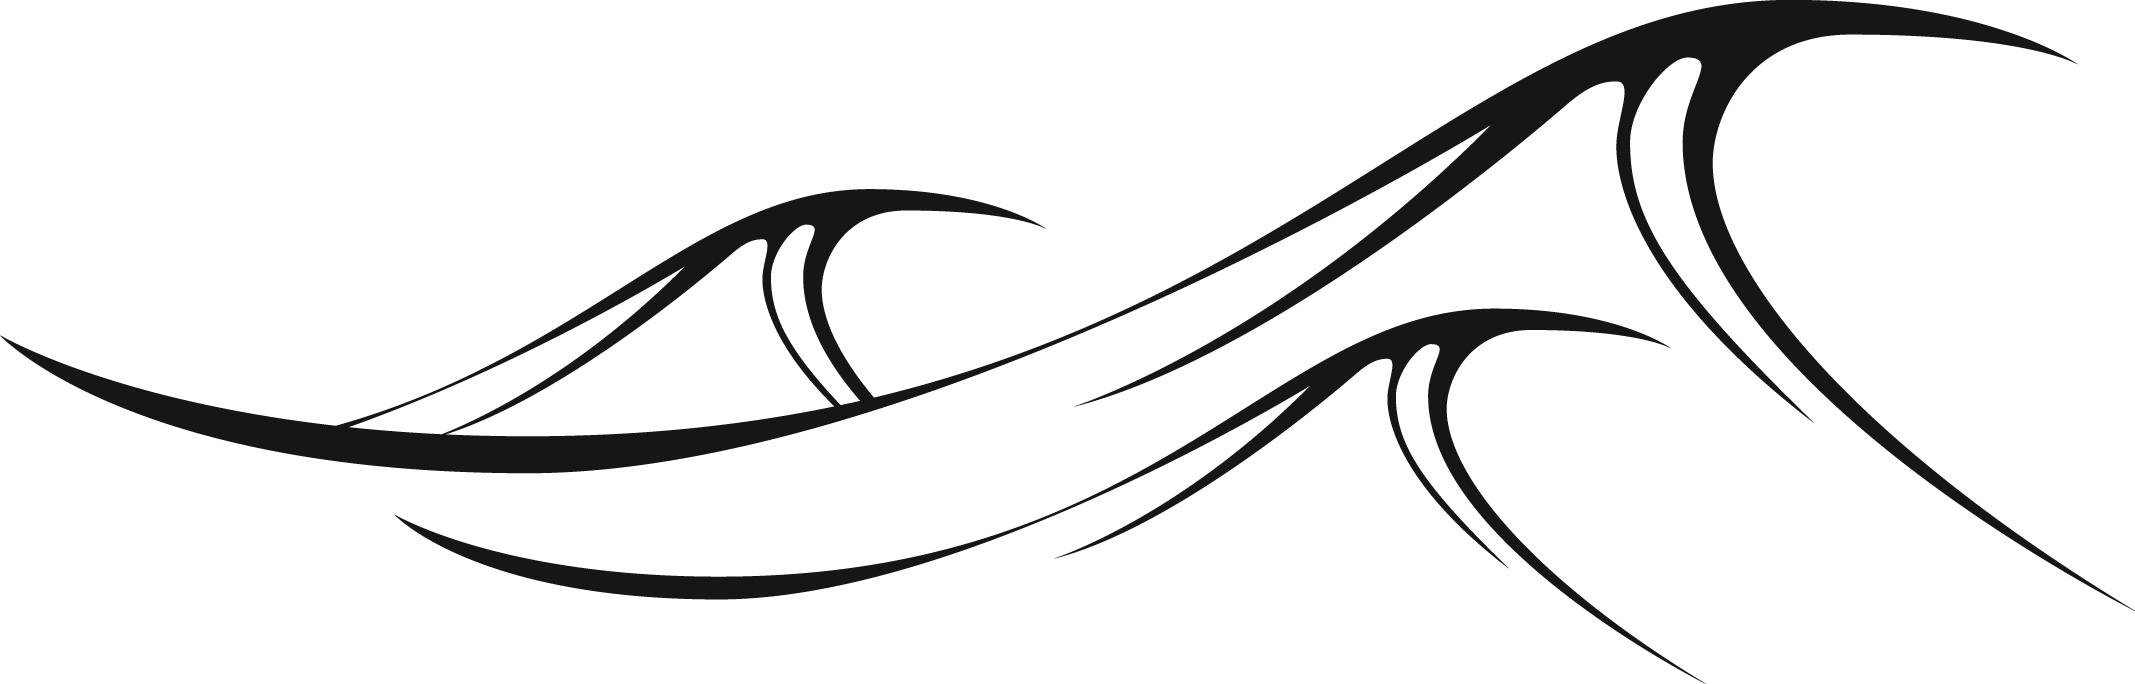 Clipart waves black and white. Ocean free download best